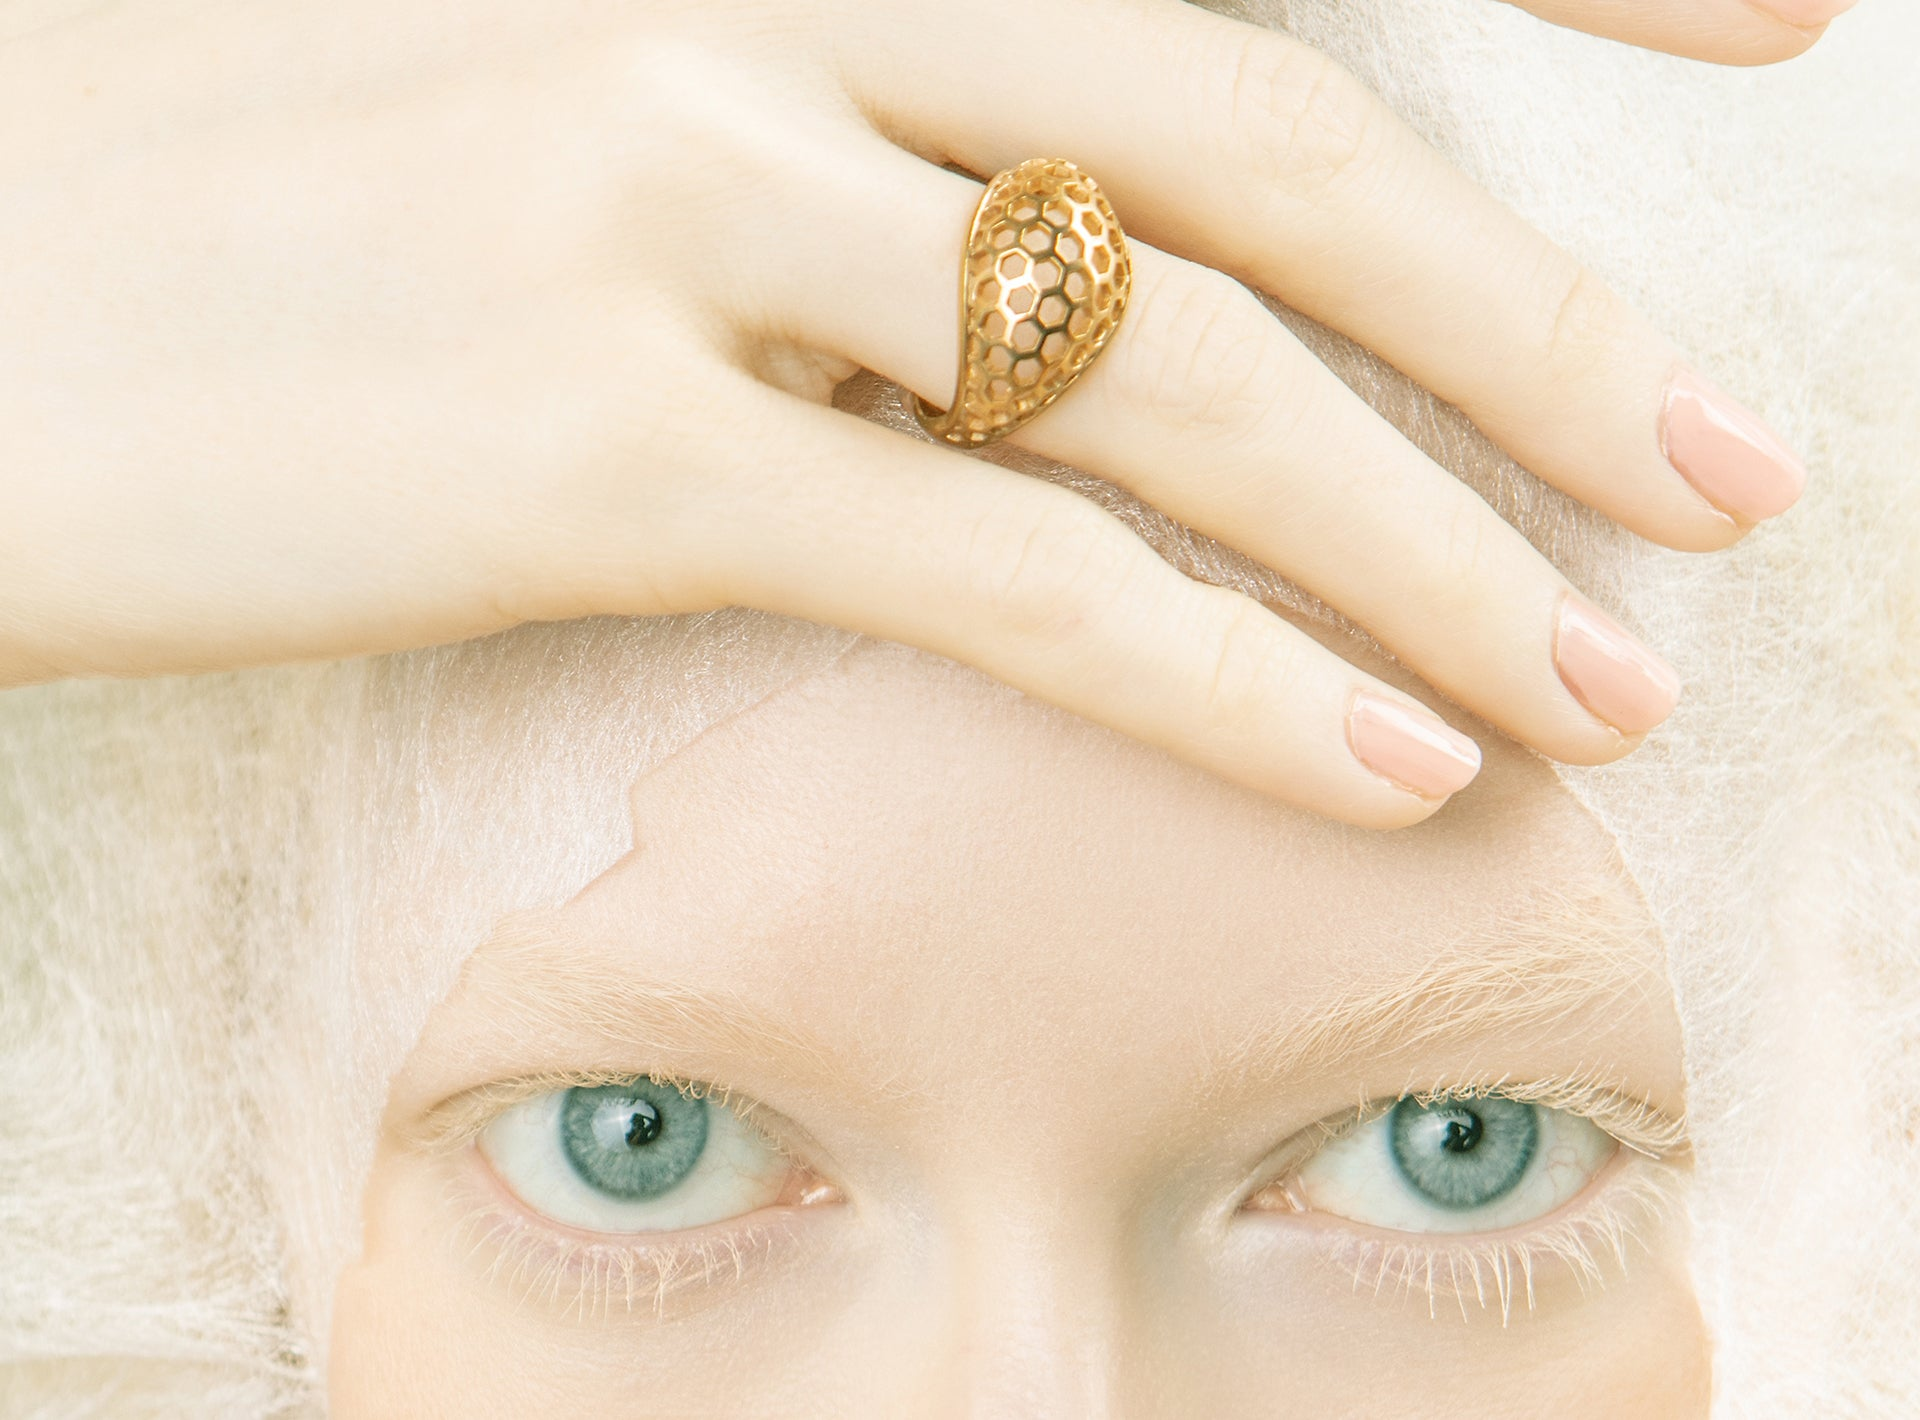 Bee Eye, Insect Eye, Dome Ring, Honeycomb, Geometric Design